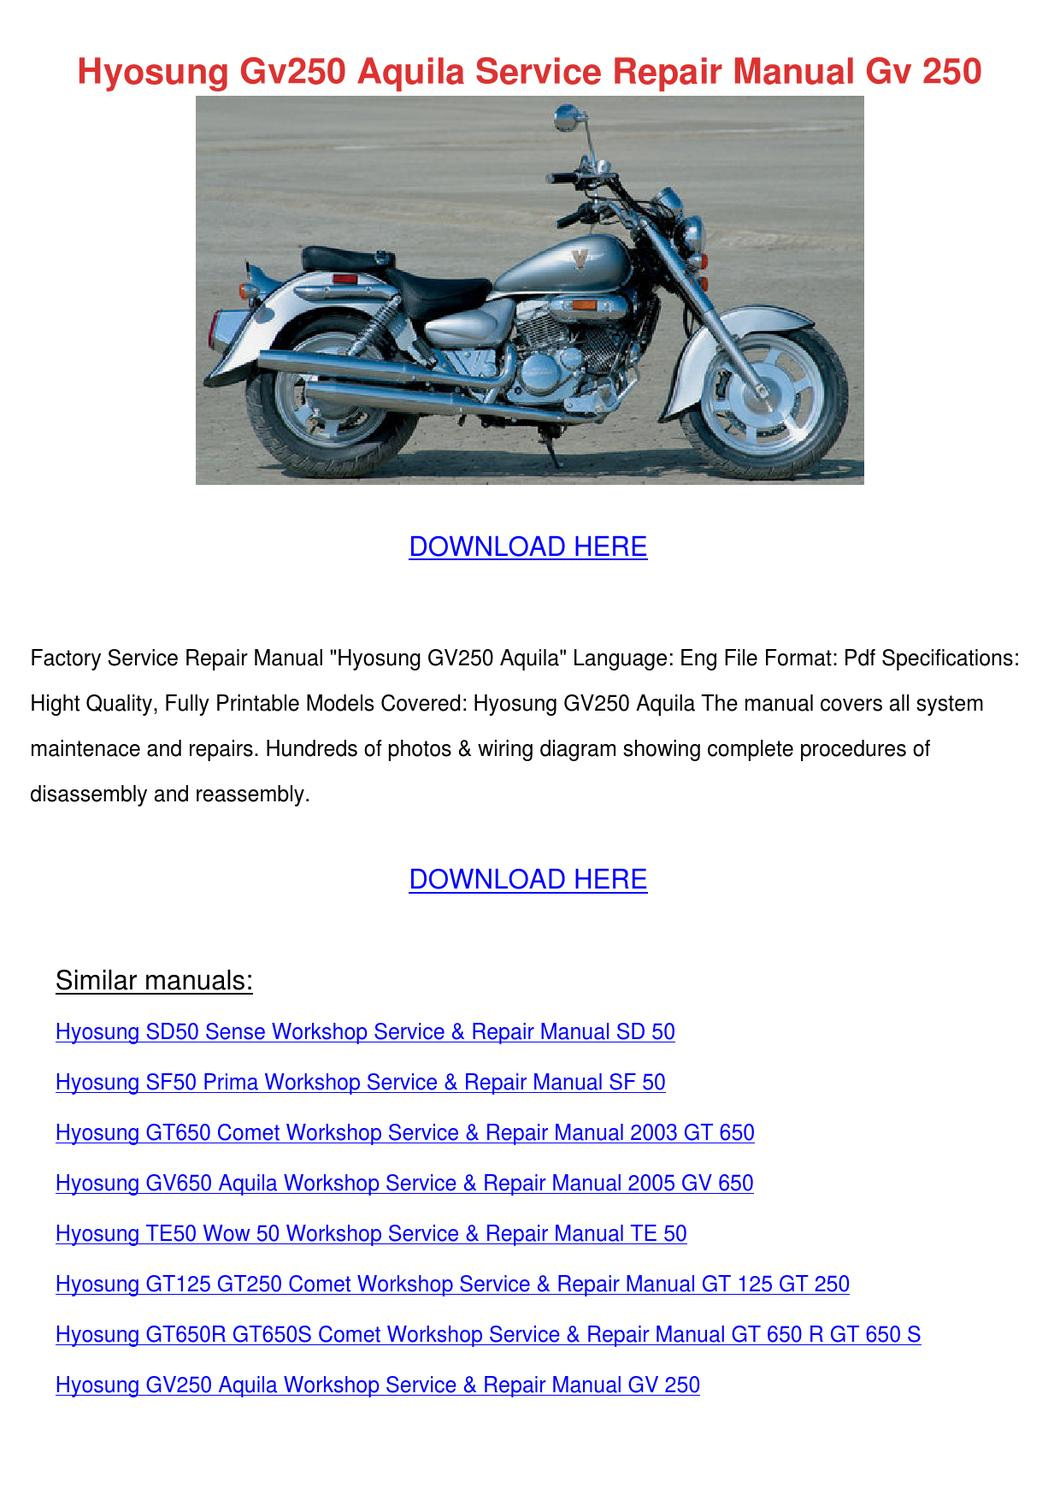 Hyosung Gv250 Aquila Service Repair Manual Gv by Karre Giovanelli - issuu